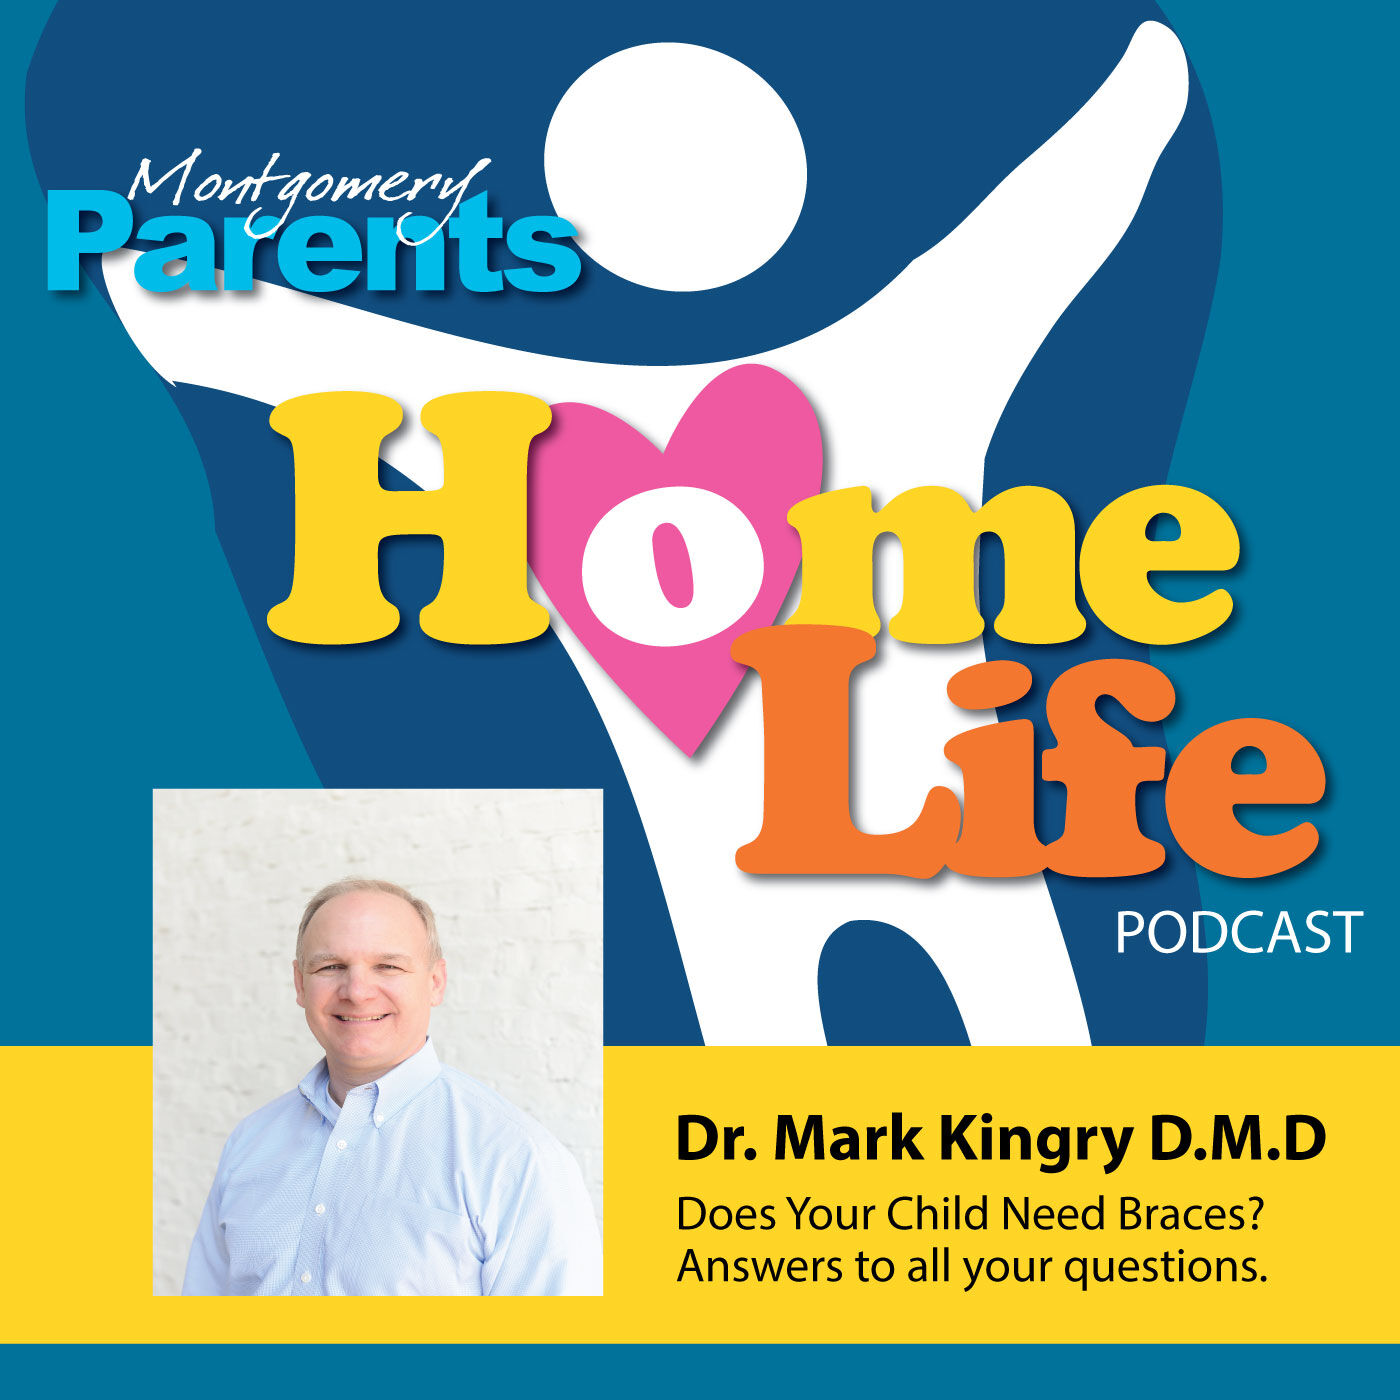 Does Your Child Need Braces?  Dr. Mark Kingry Answers All Your Questions!